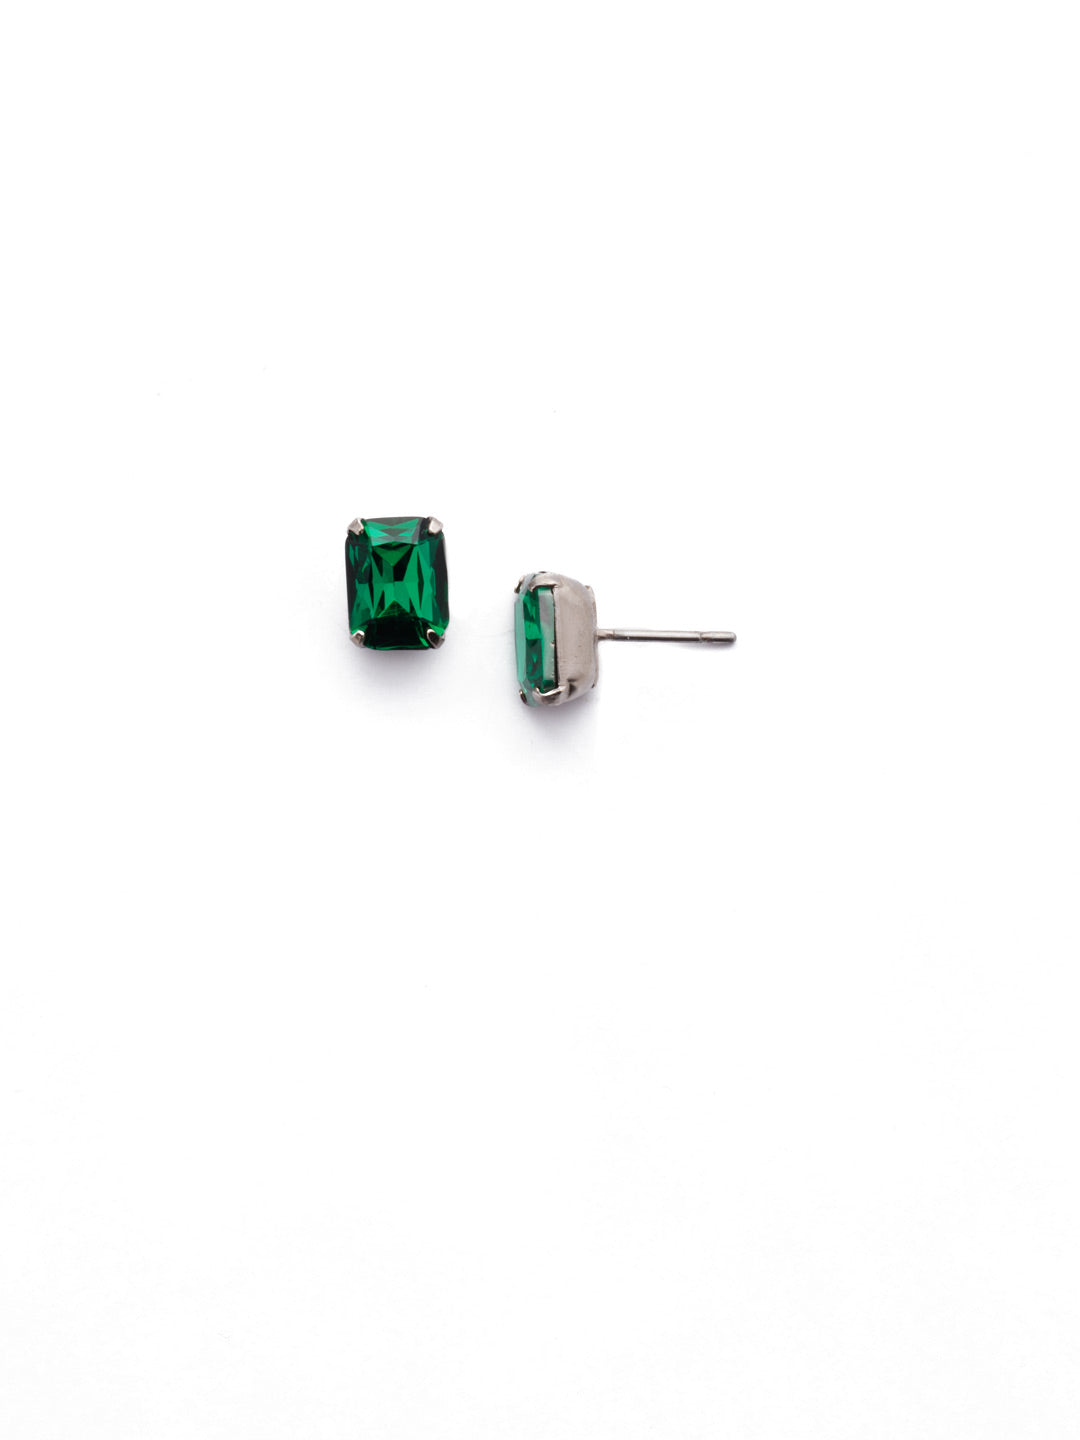 Mini Emerald Cut Stud Earrings - EBY42ASEME